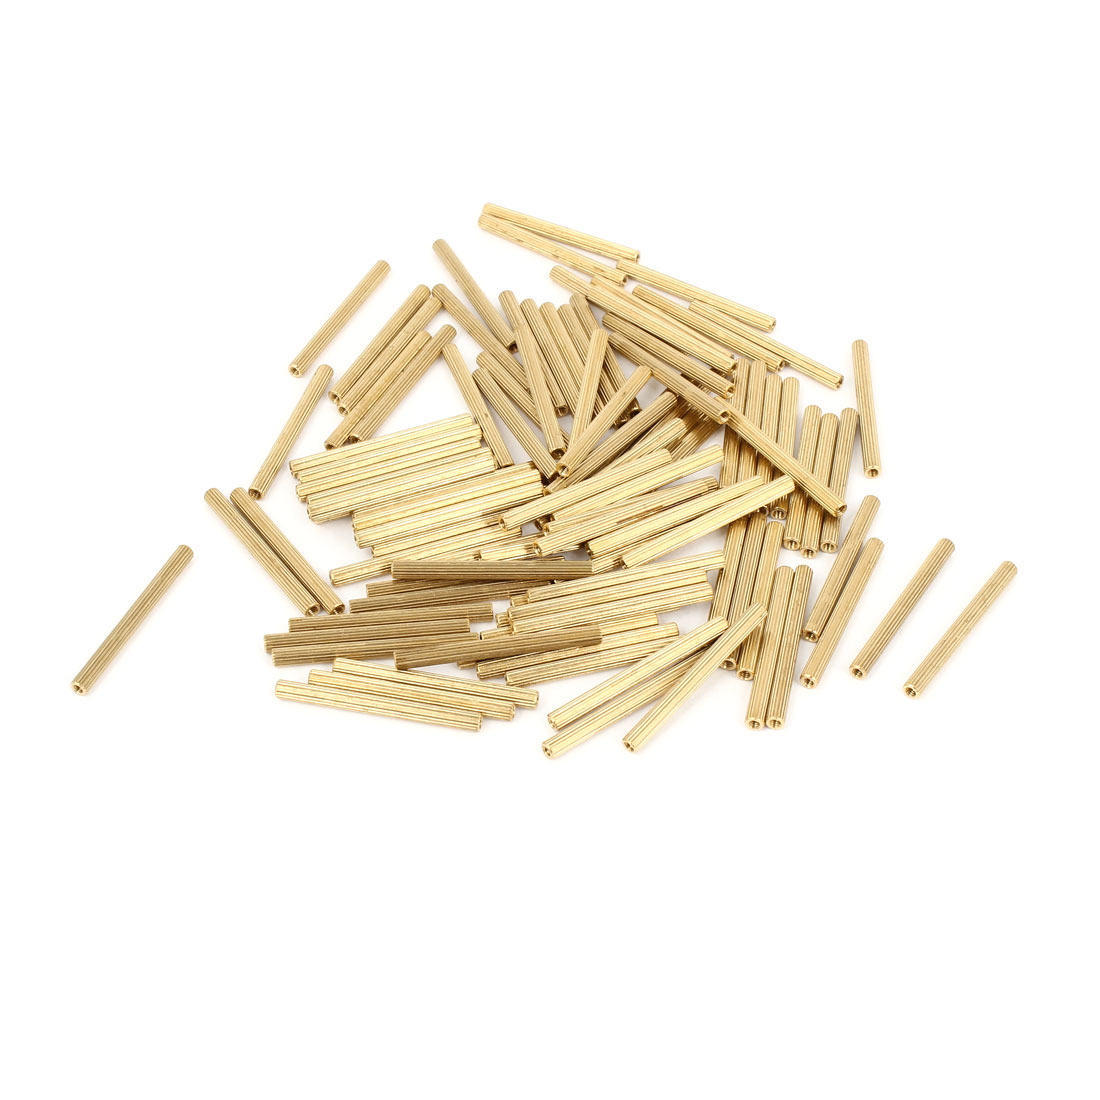 100 Pcs Female Threaded Pillars Brass Standoff Spacer Gold Tone M2x34mm